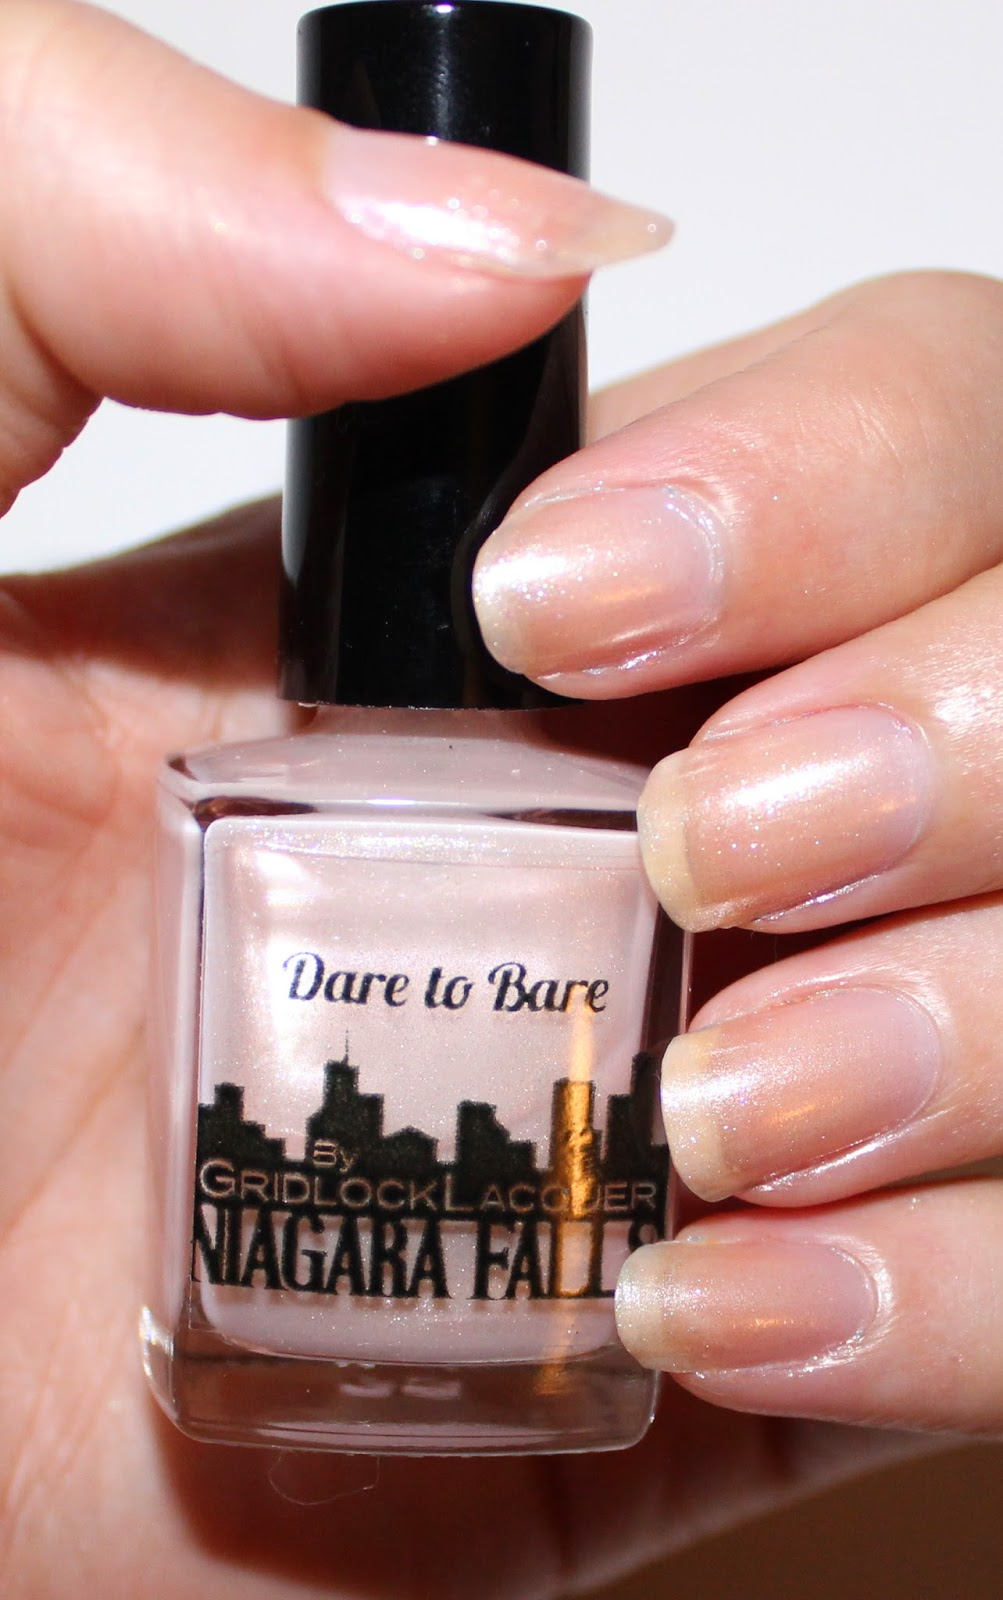 Gridlock Lacquer Dare to Bare